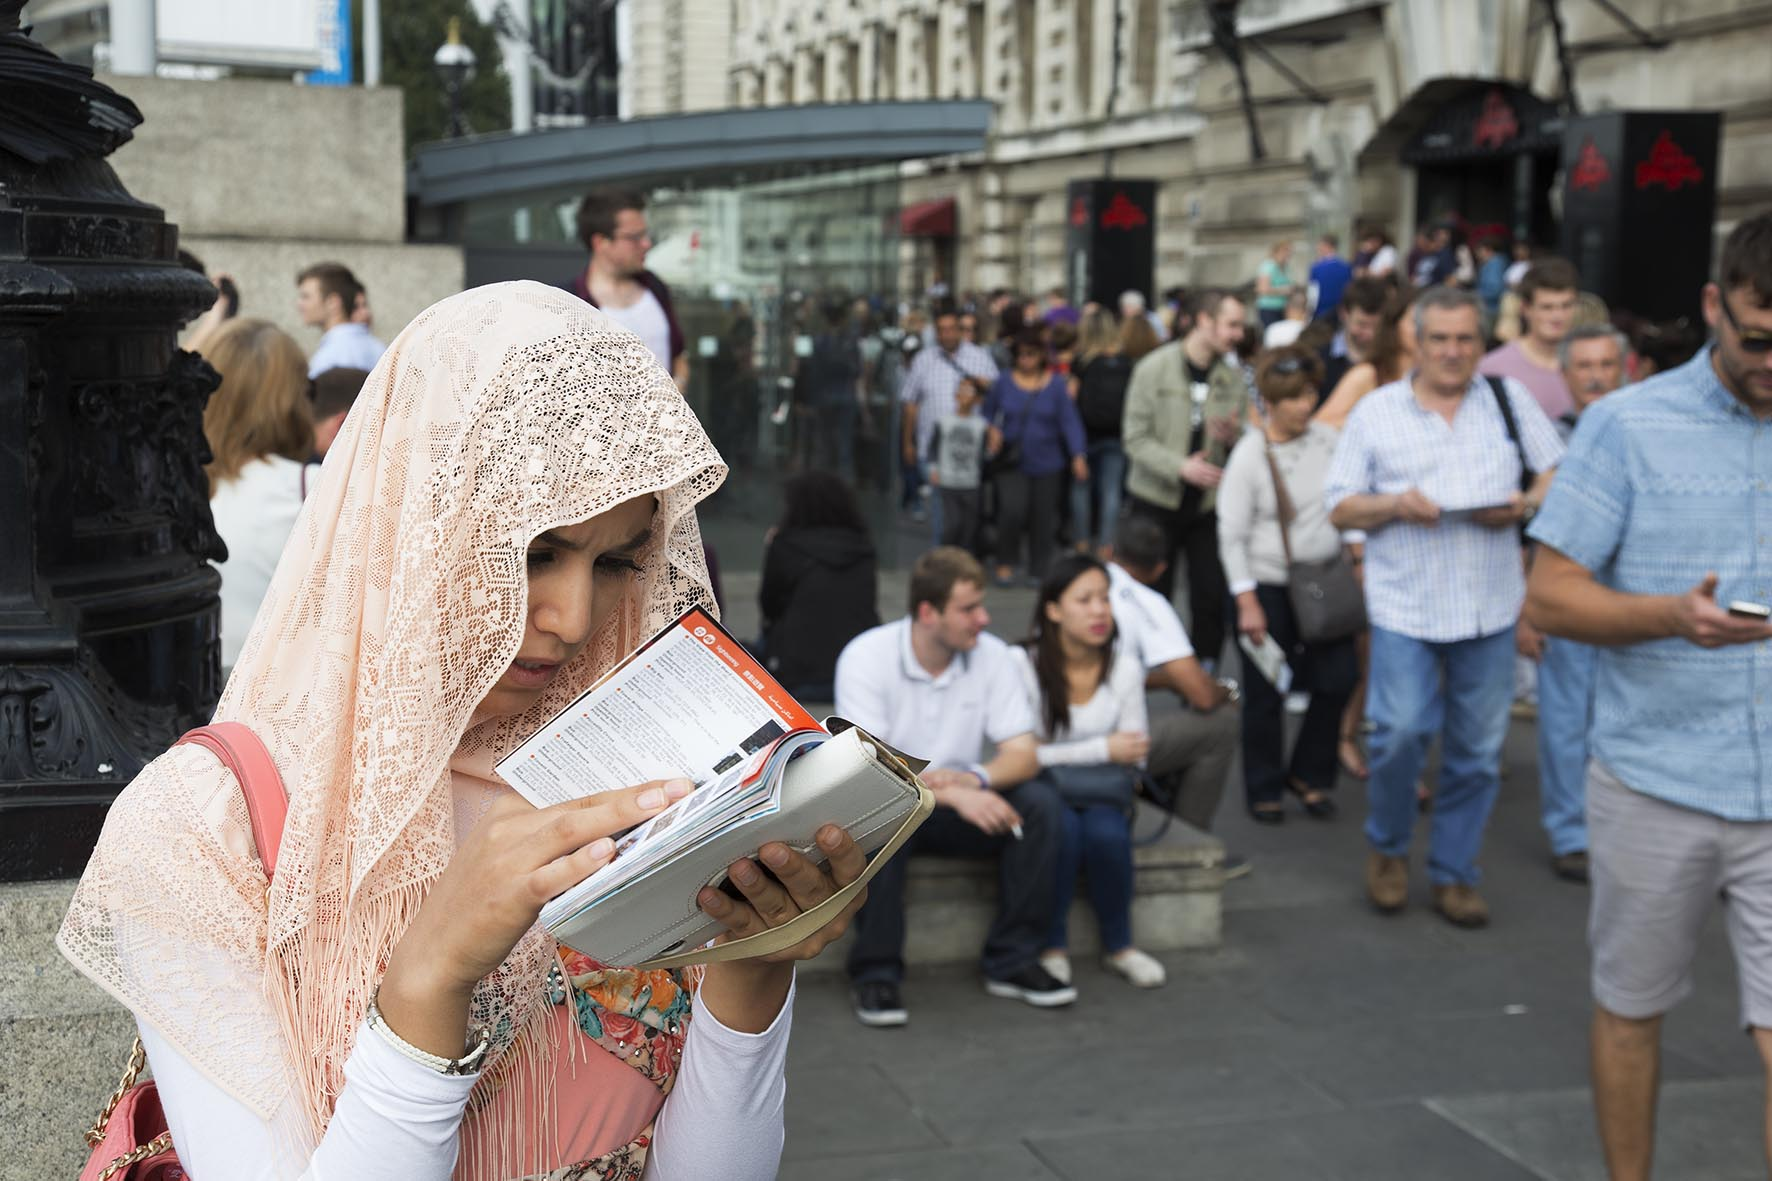 20140928_south bank headscarf_A.jpg